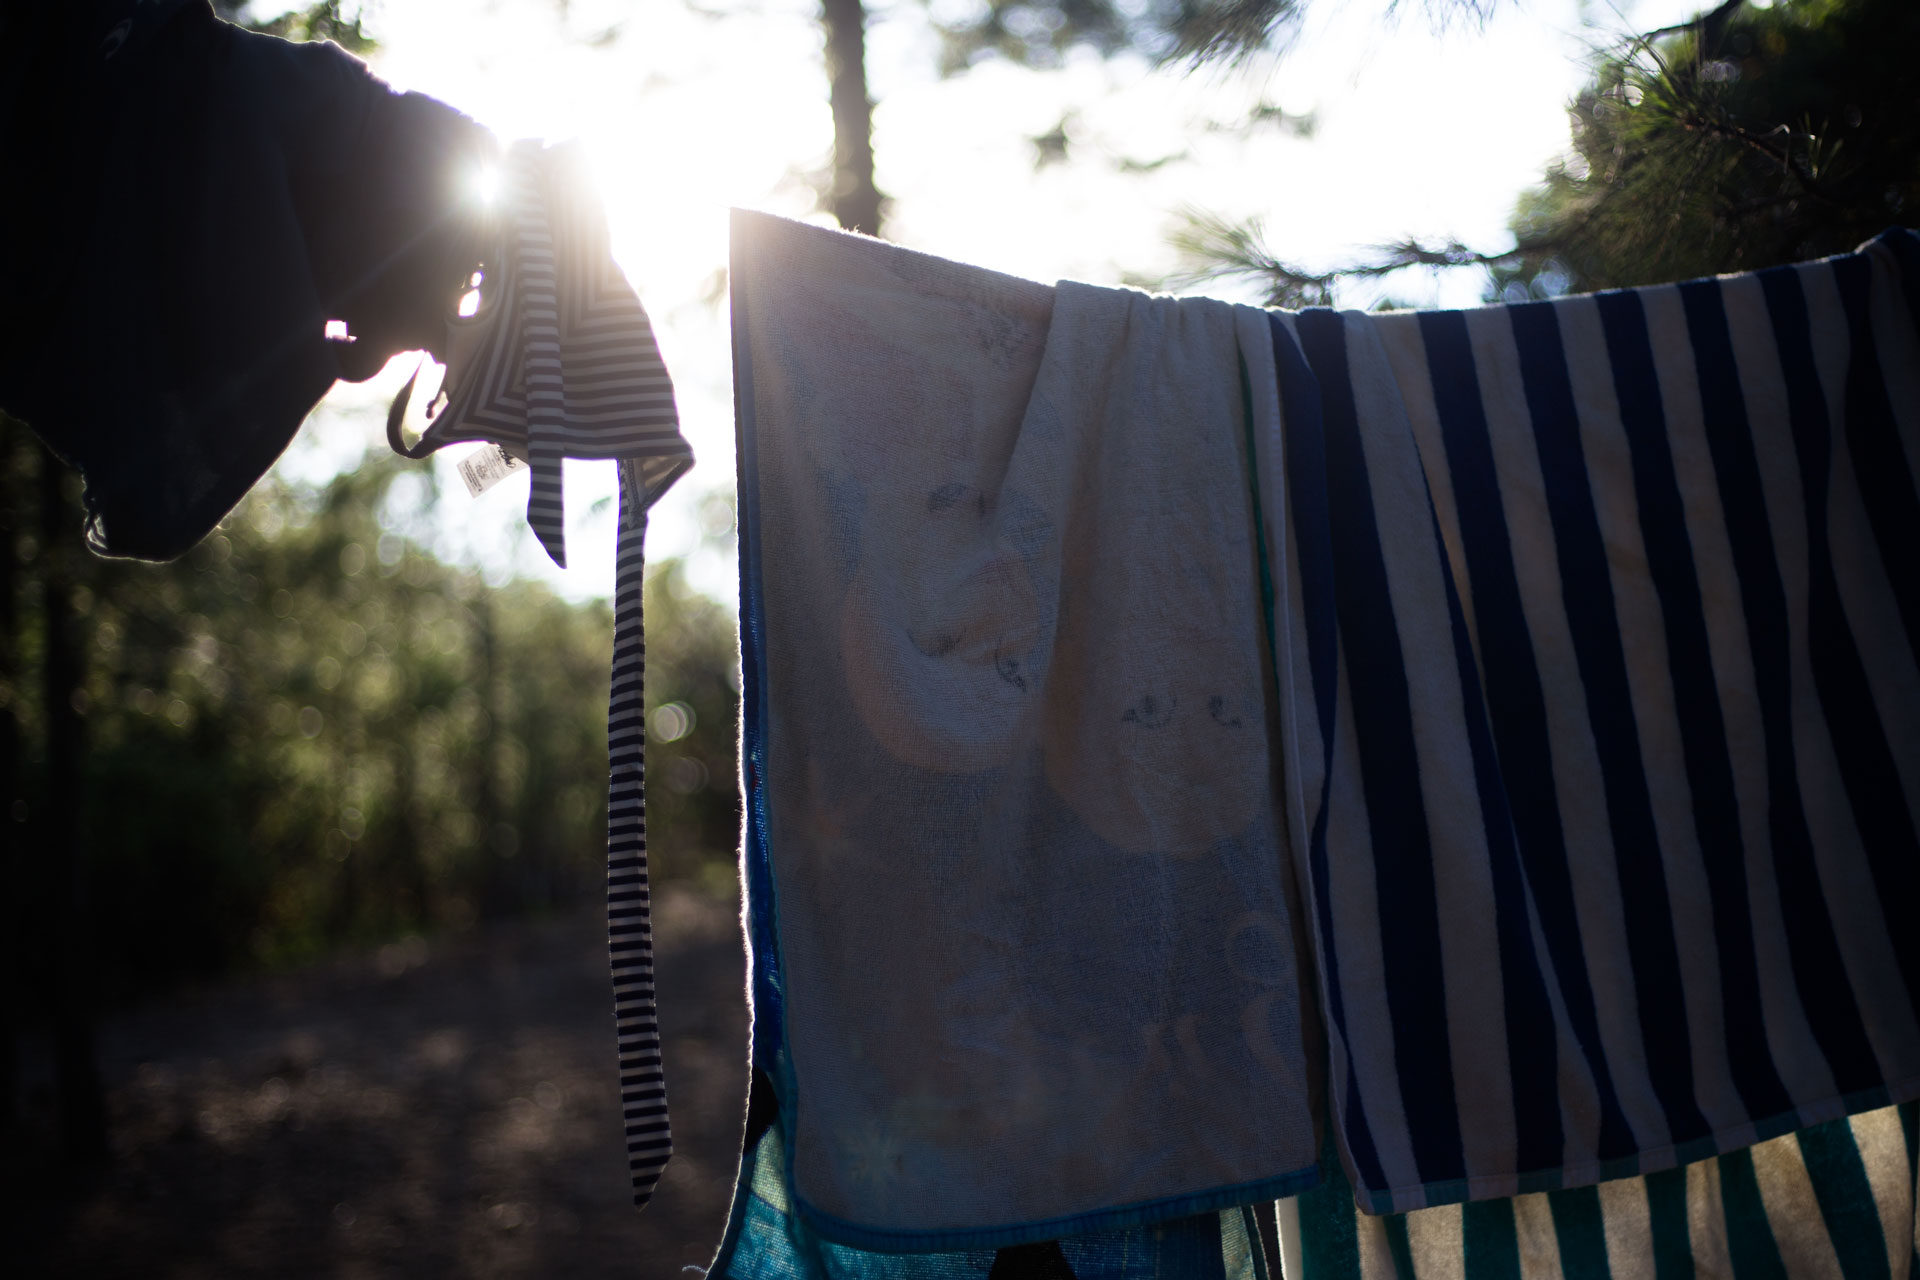 Towels and swimming suit laying the line with the sun peeking behind them